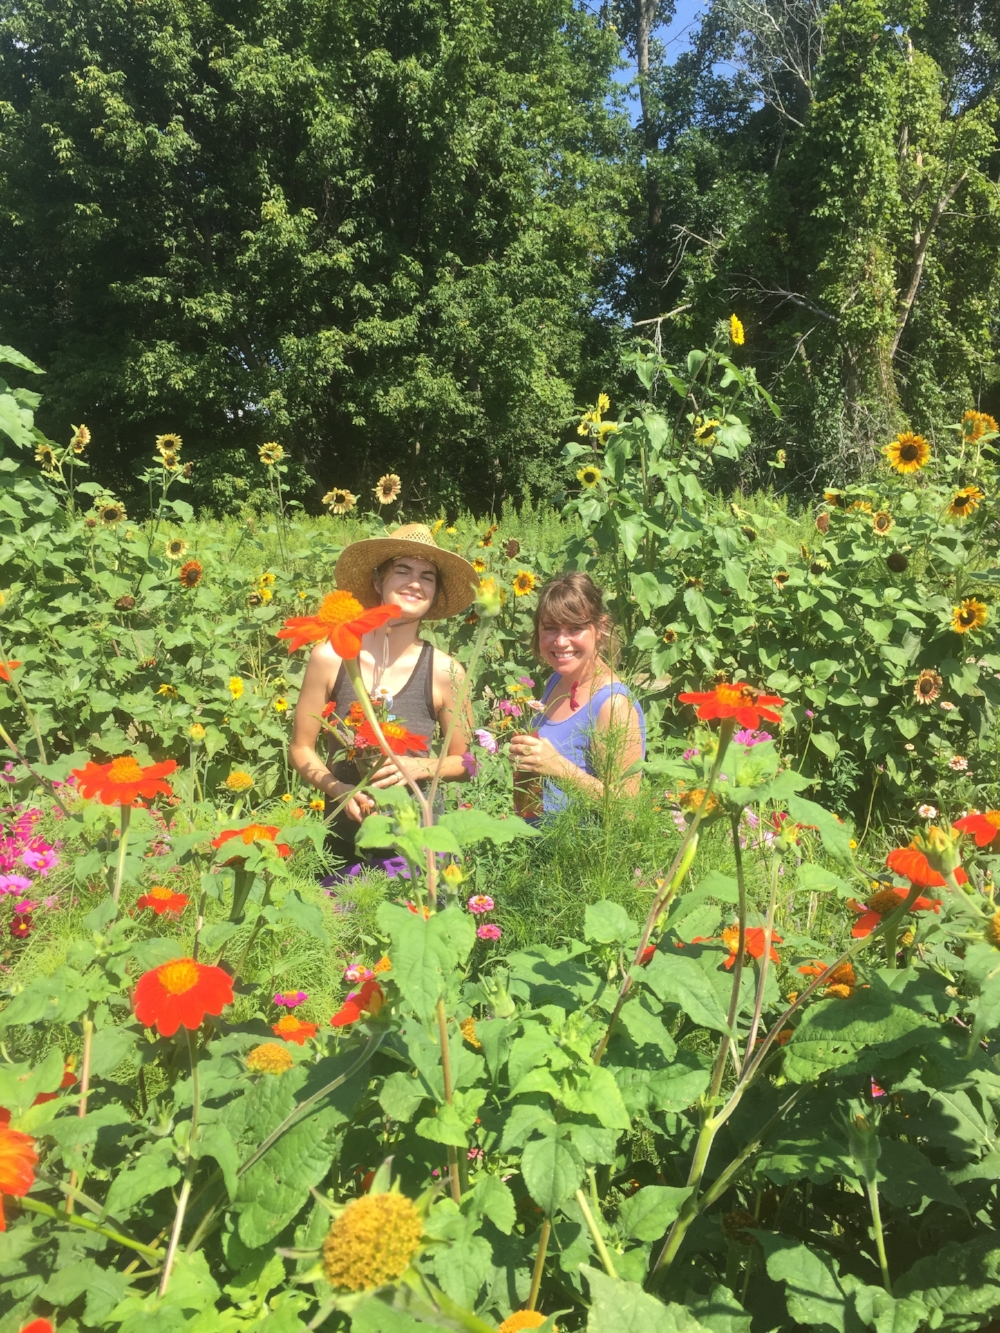 Members enjoying the bounty of the flower and herb garden during the height of the summer and Julia harvesting carrots for a weekly pickup (right).